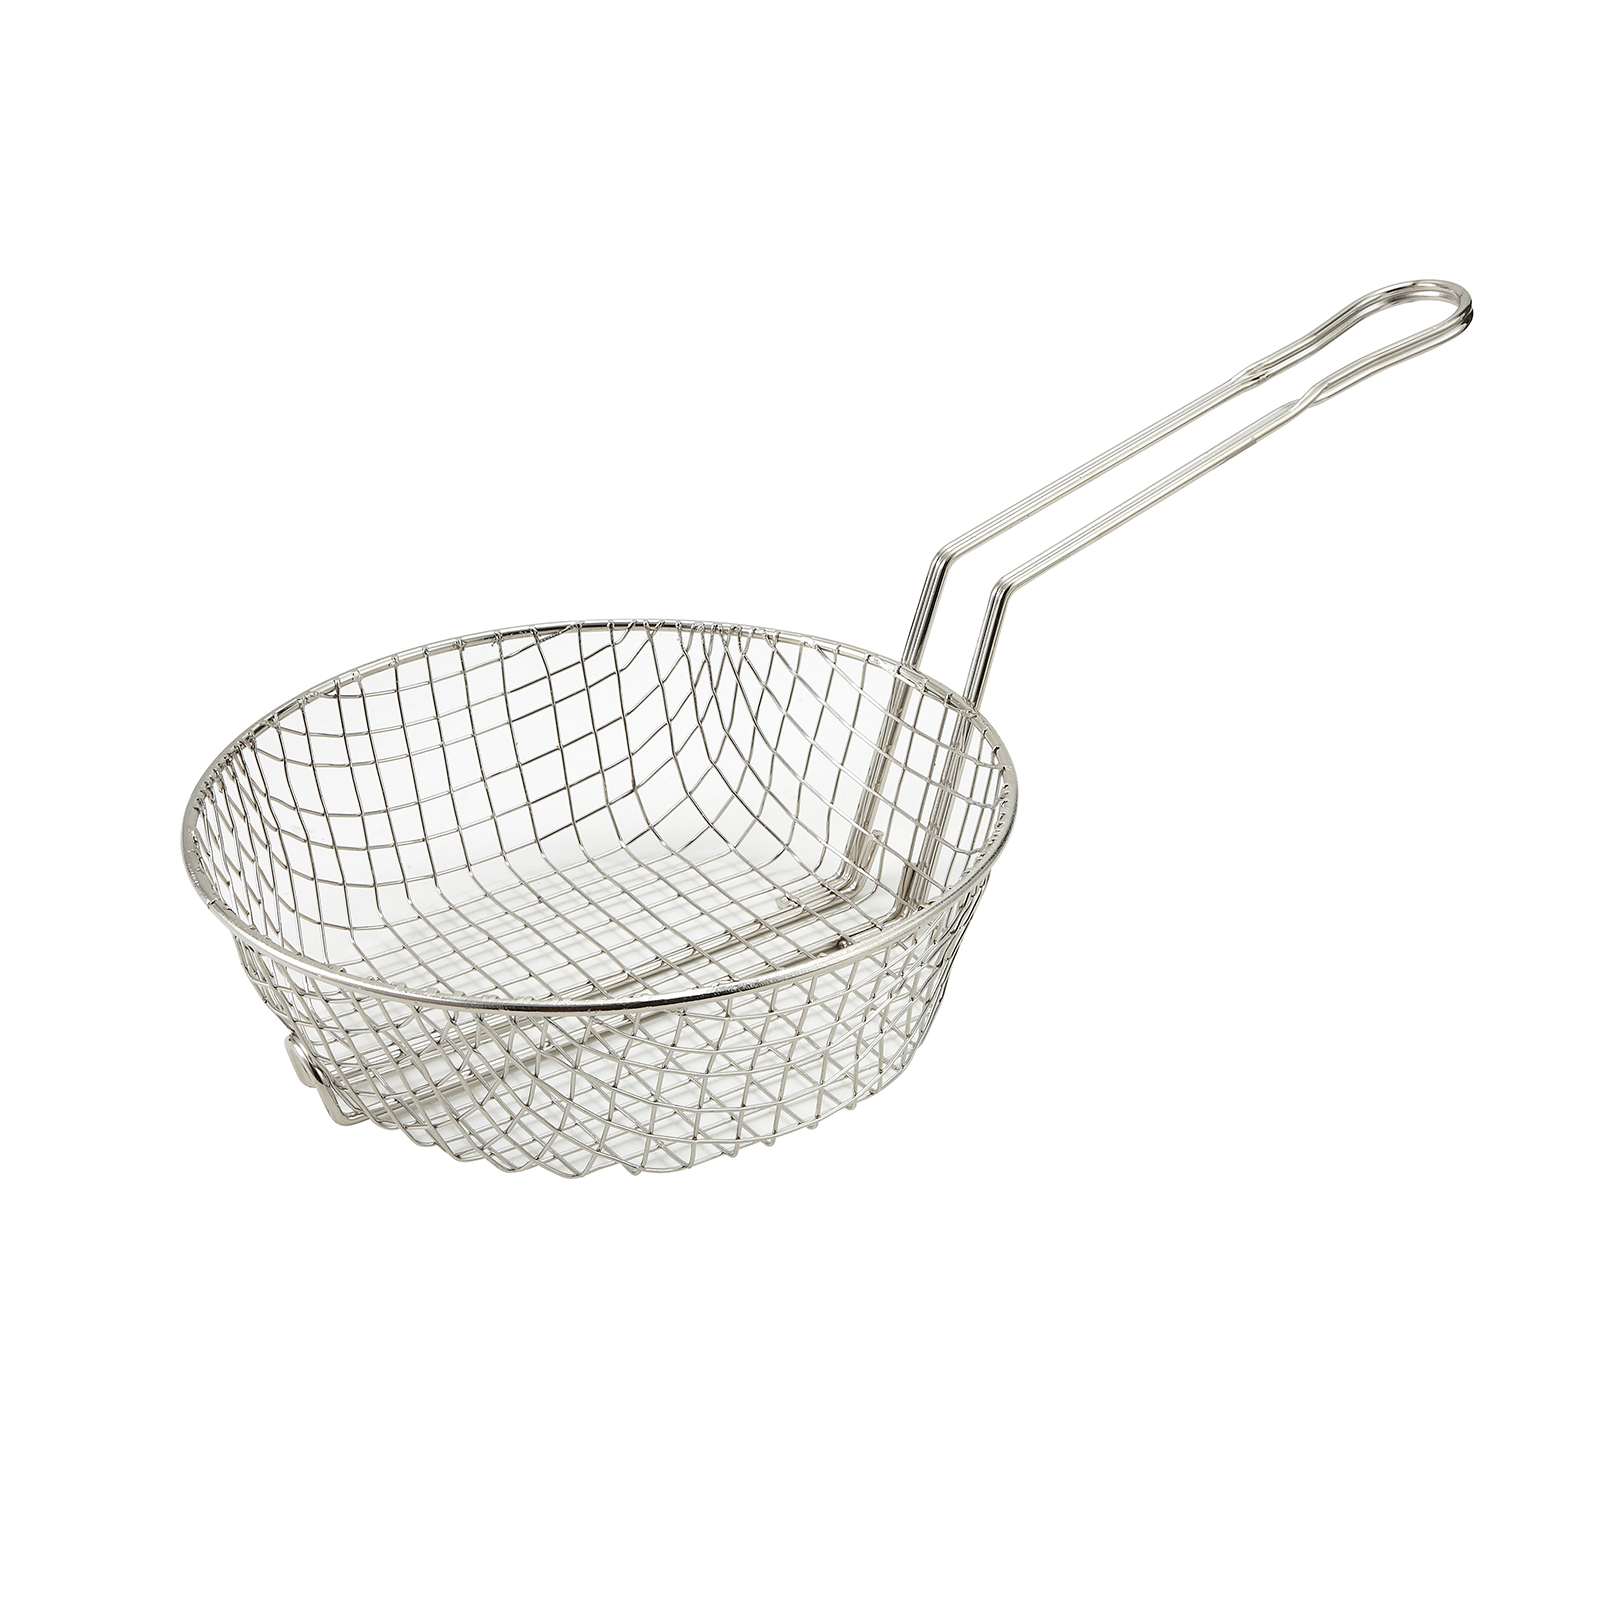 Winco MSB-12 fryer basket